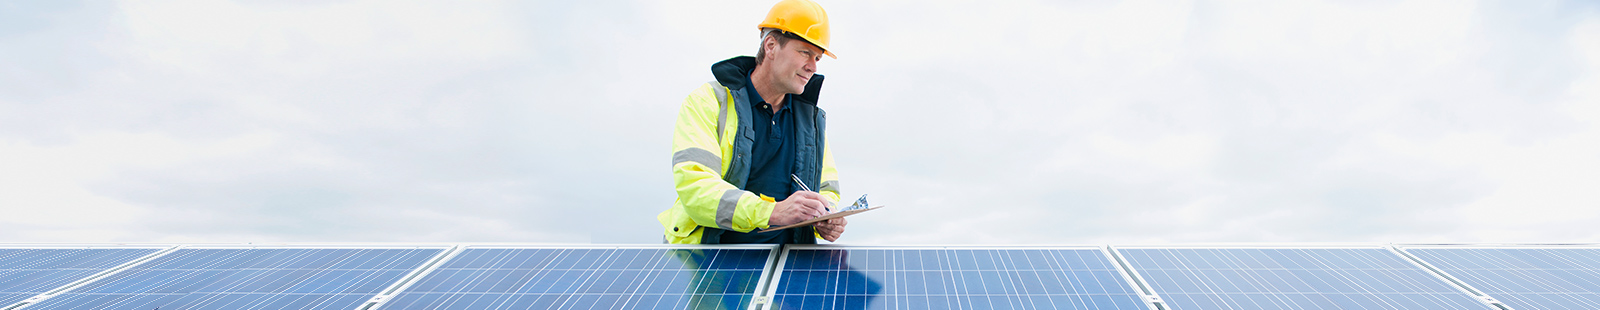 Worker with clipboard checking solar panels